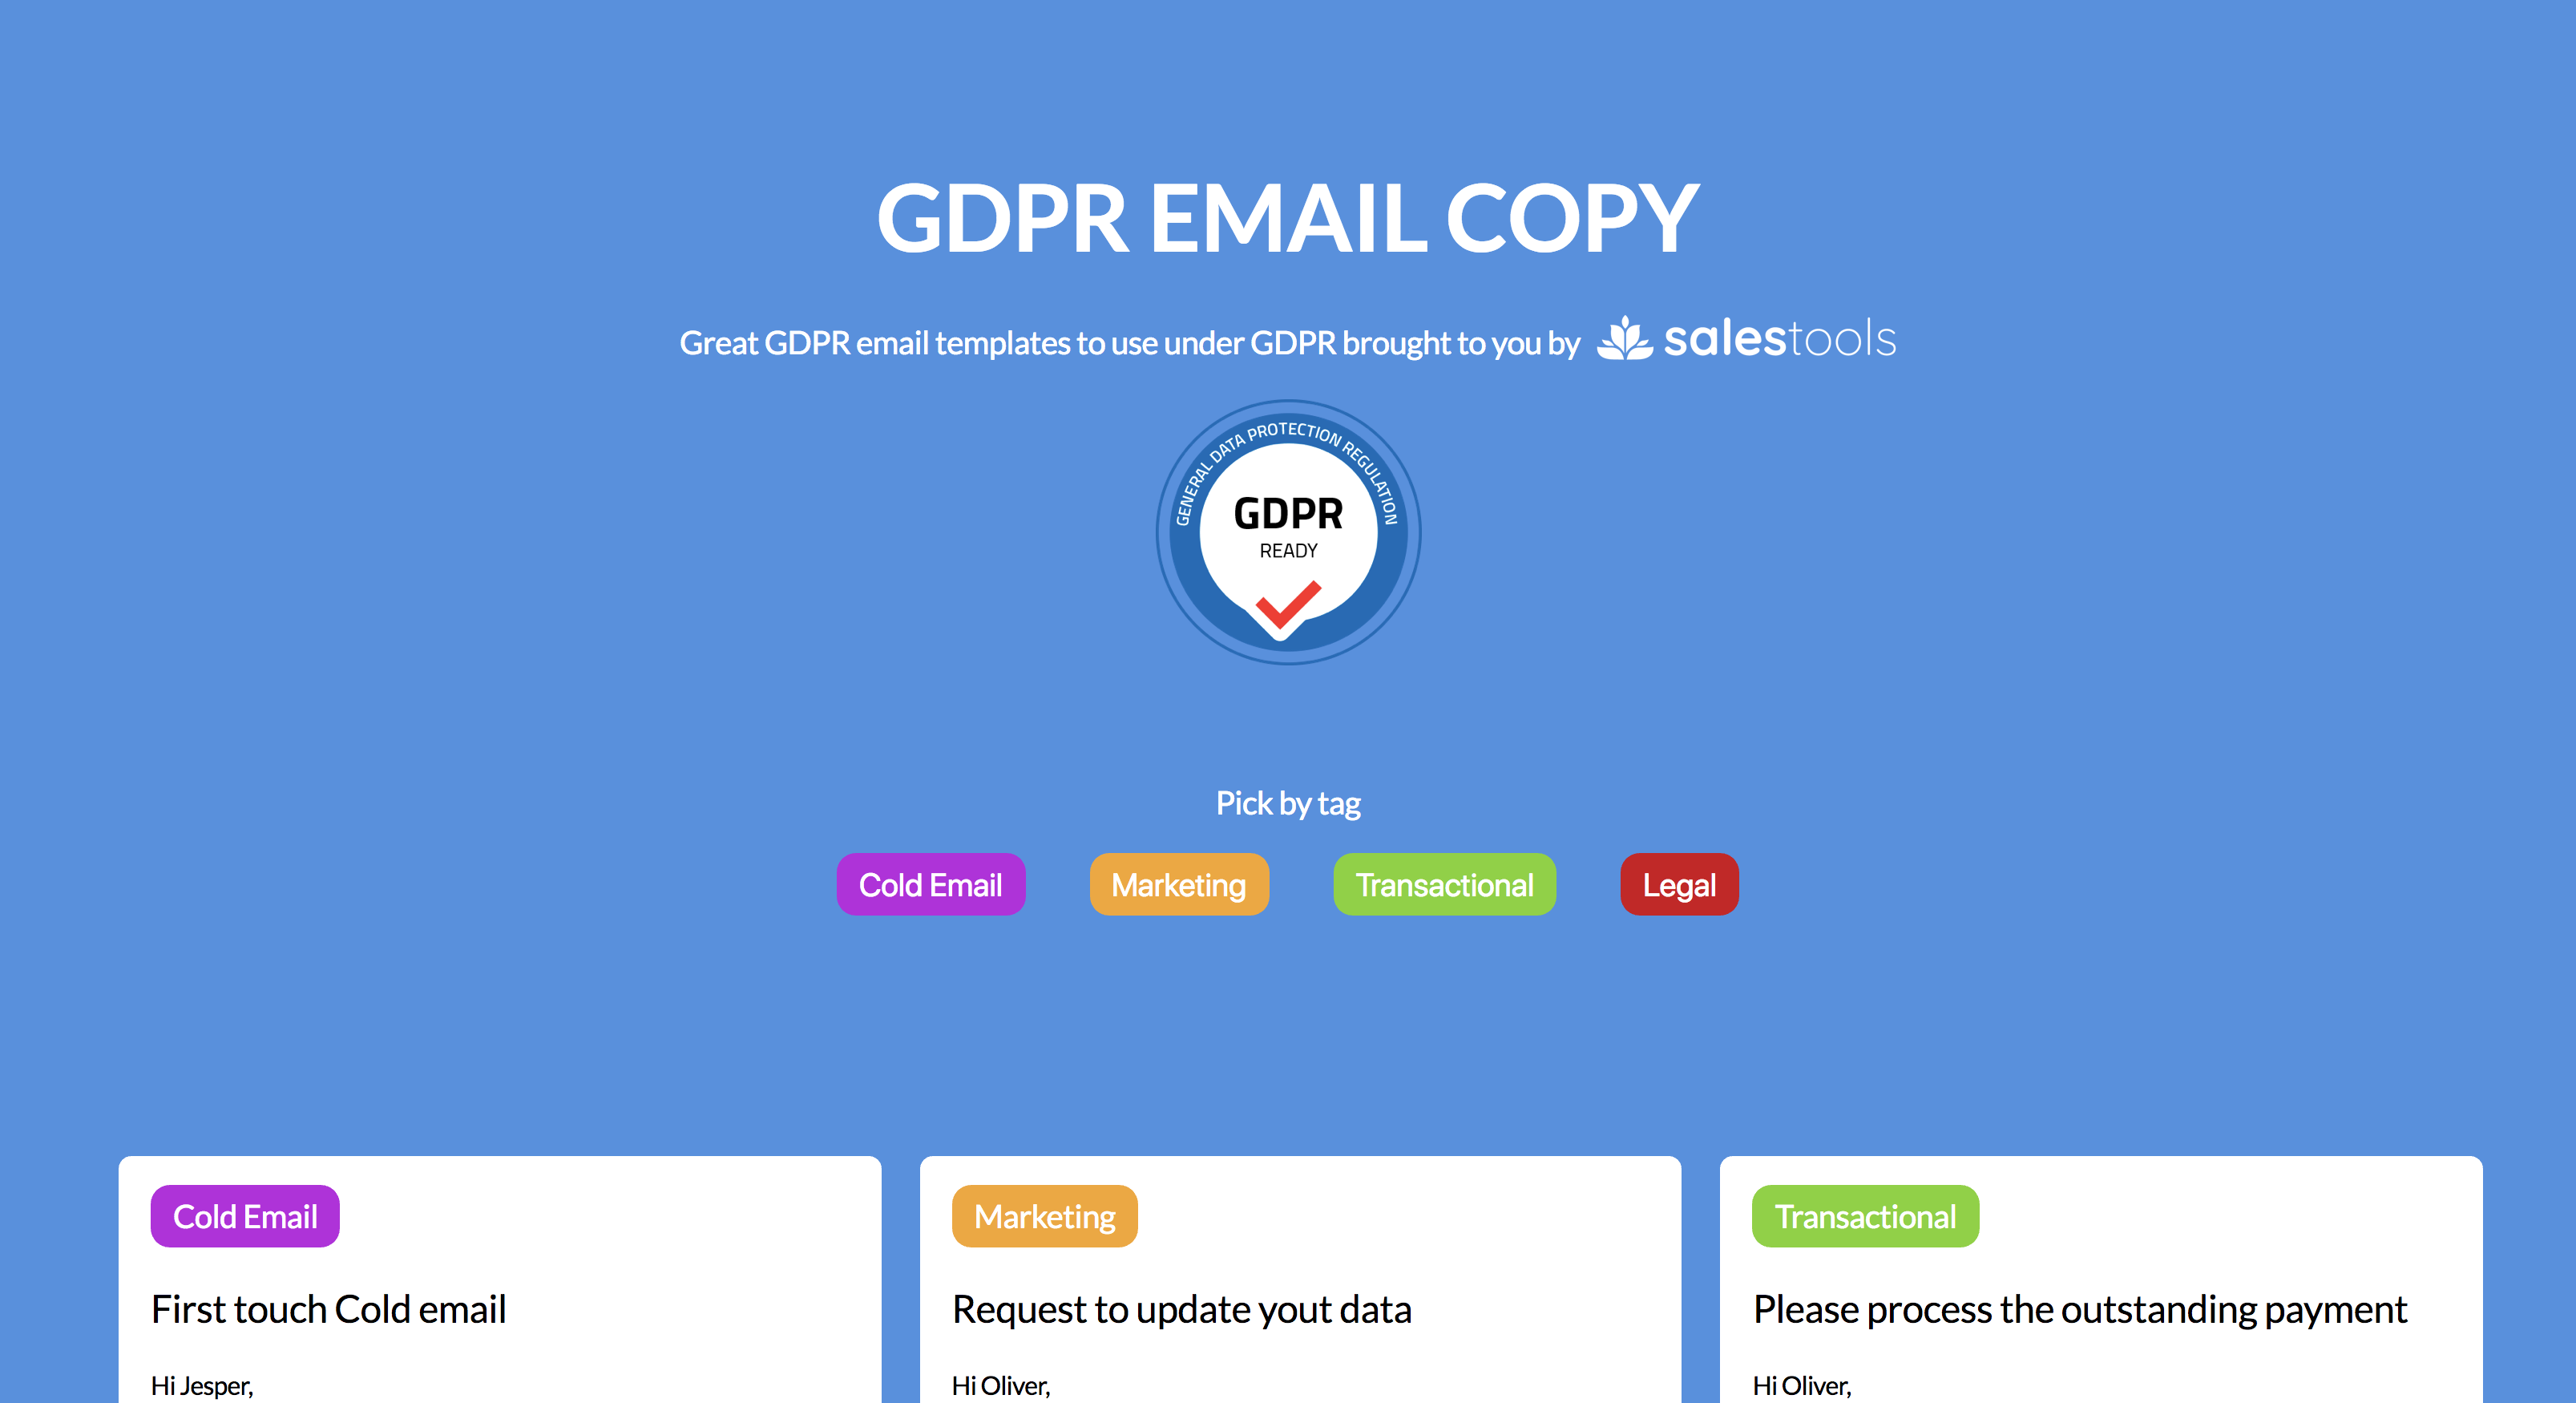 Gdpr Email Copy Email Templates To Use Under Gdpr Product Hunt